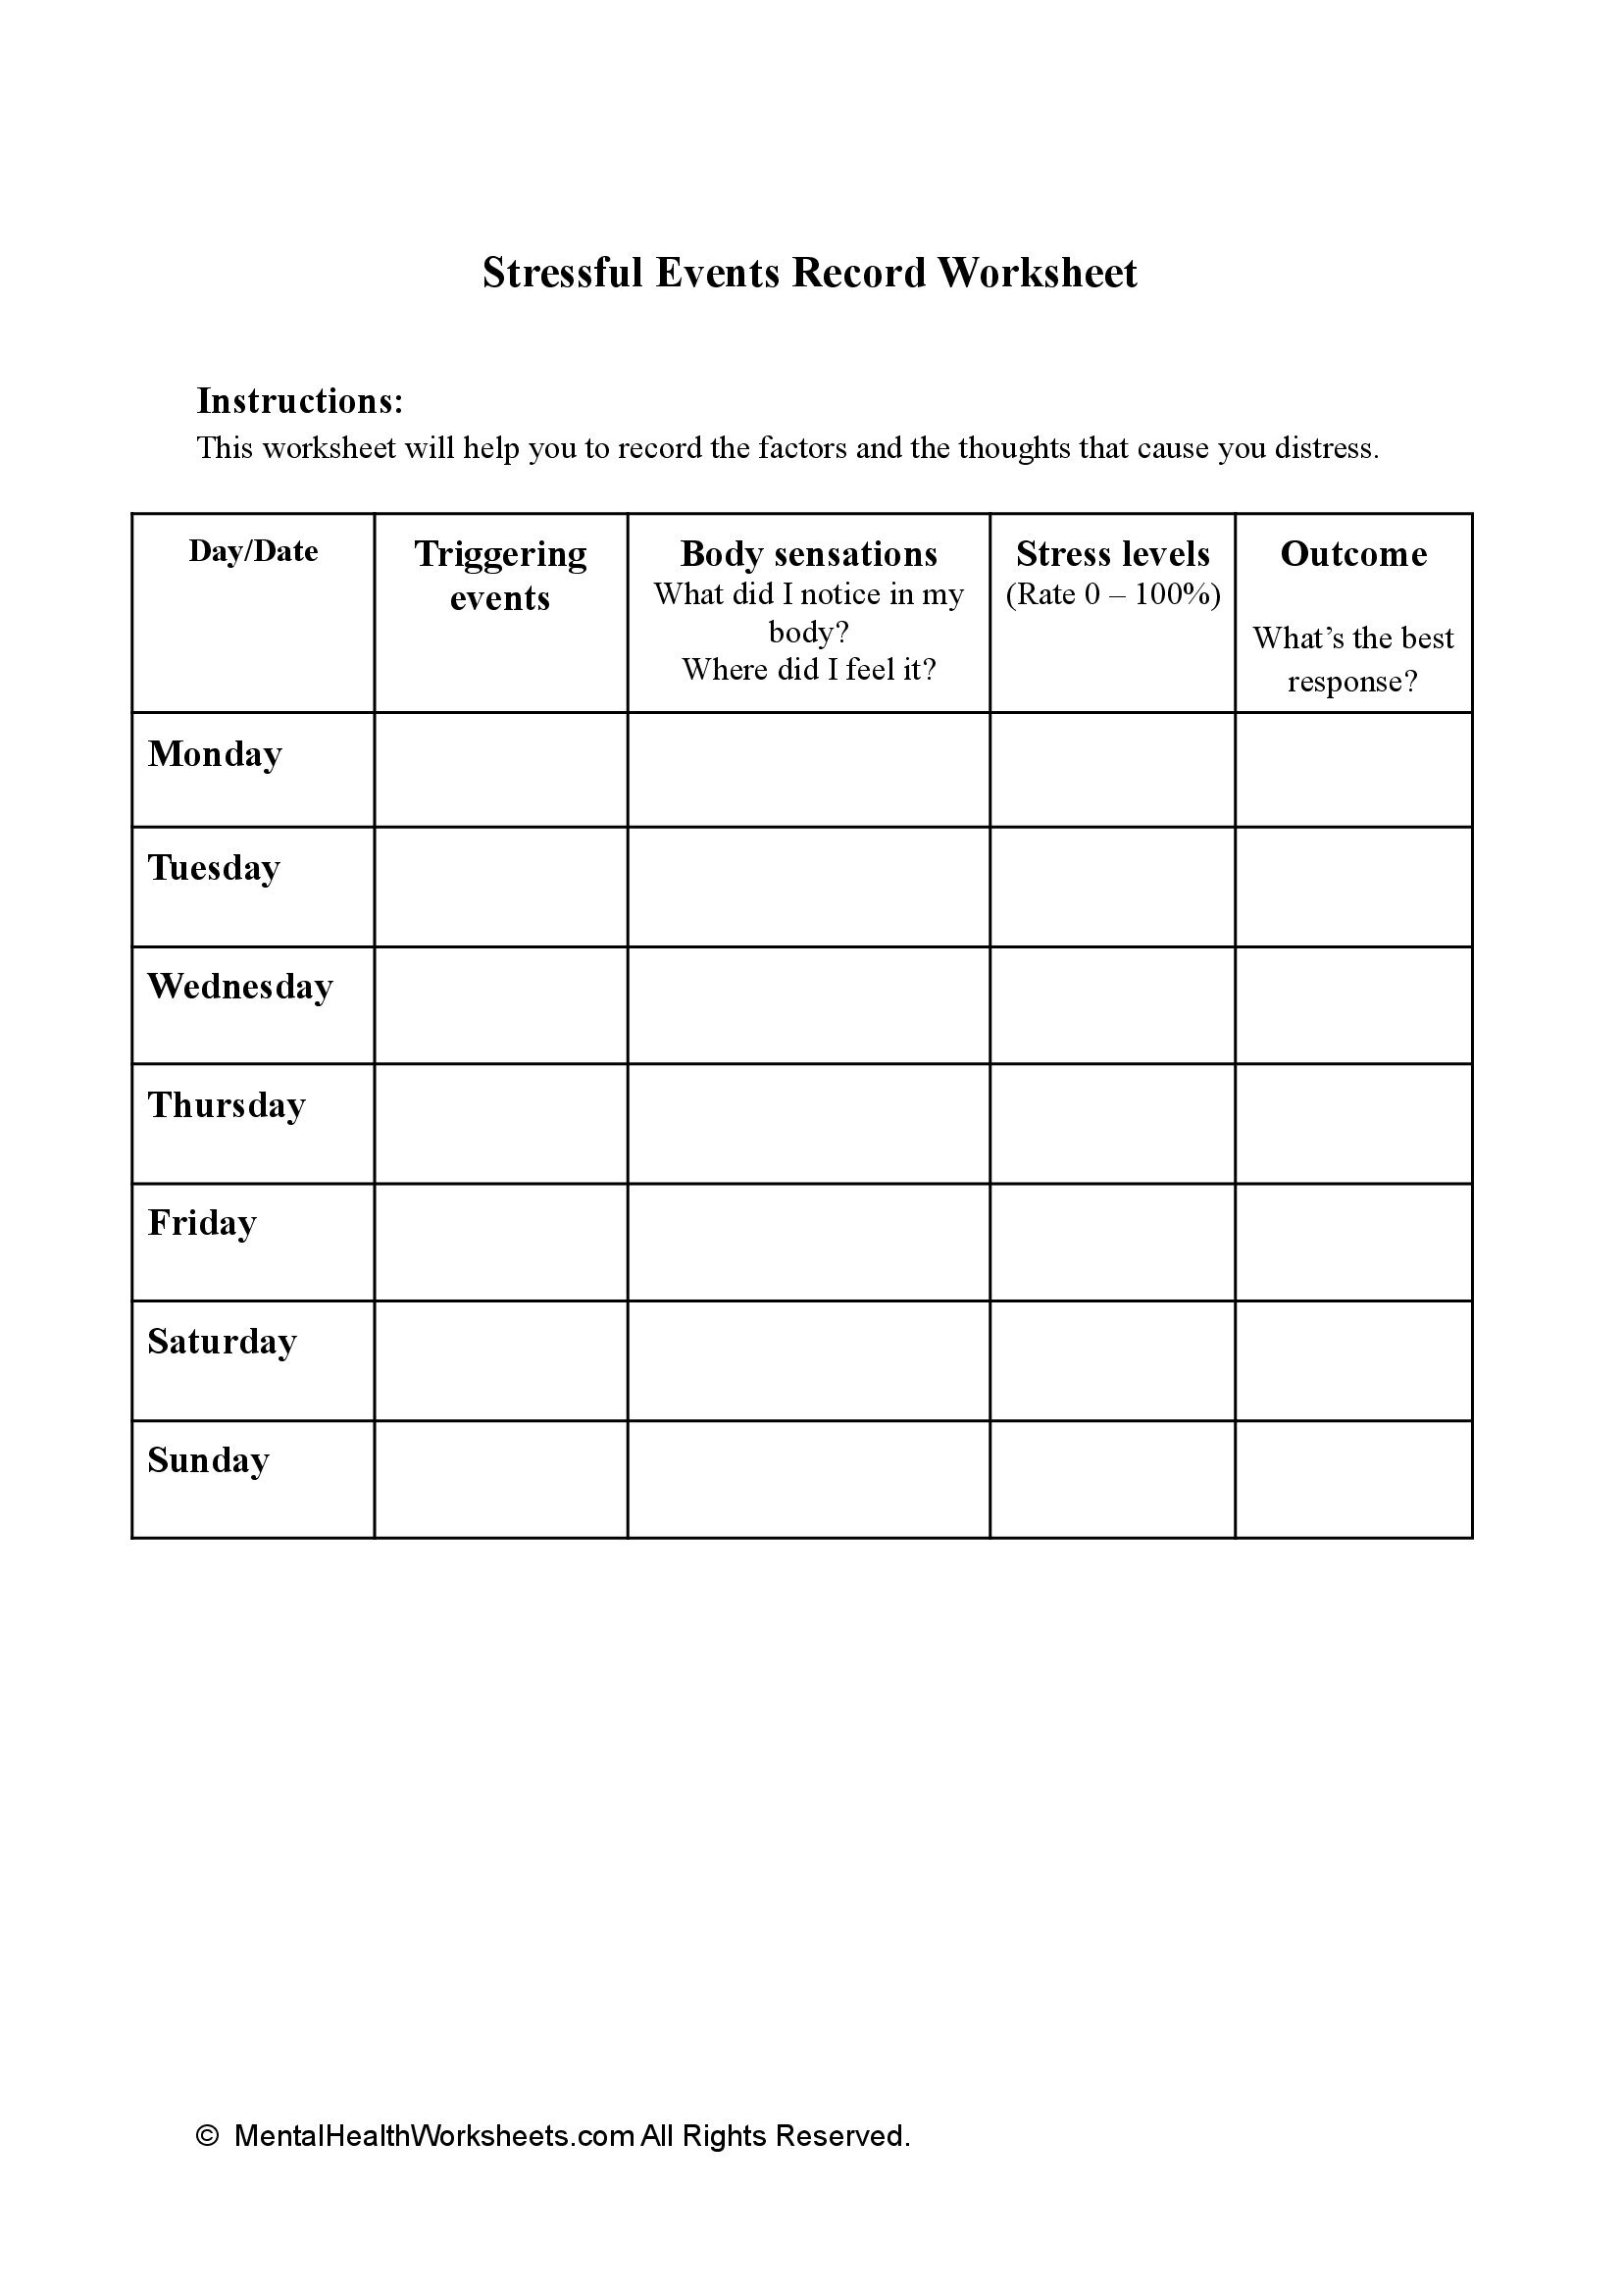 Stressful Events Record Worksheet